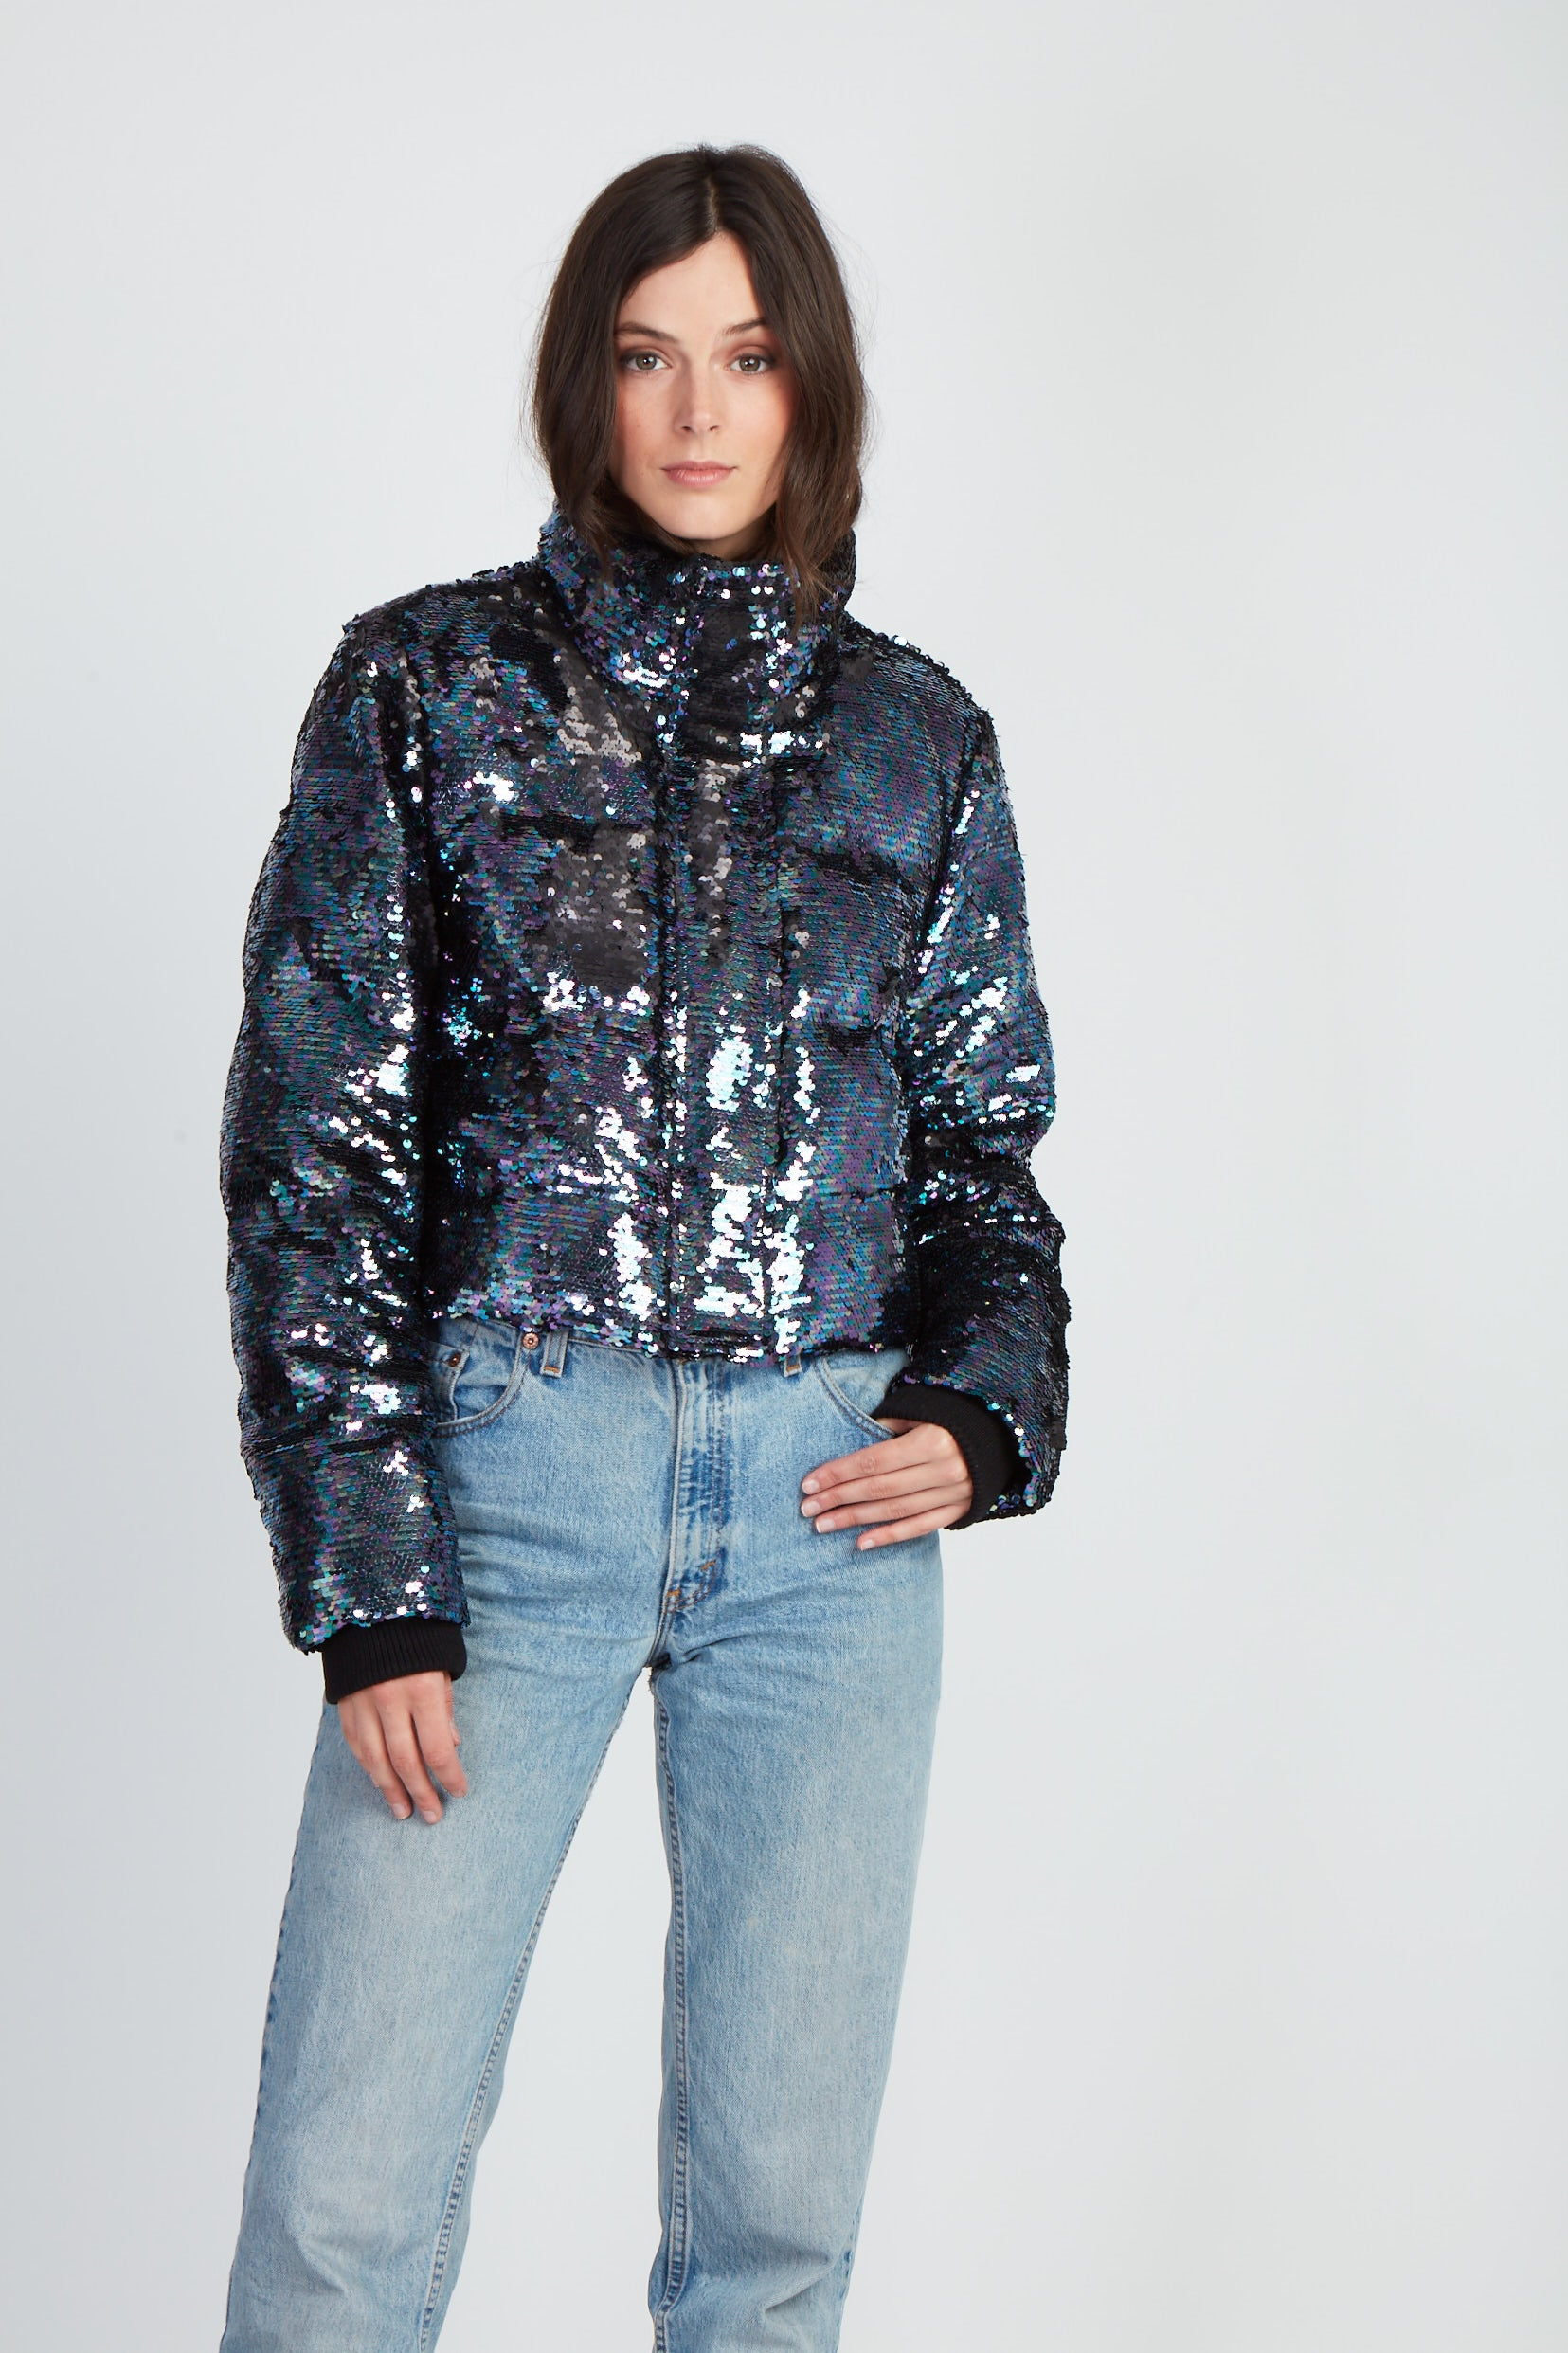 The Crazy In Love Jacket - Black Oil Slick Sequins